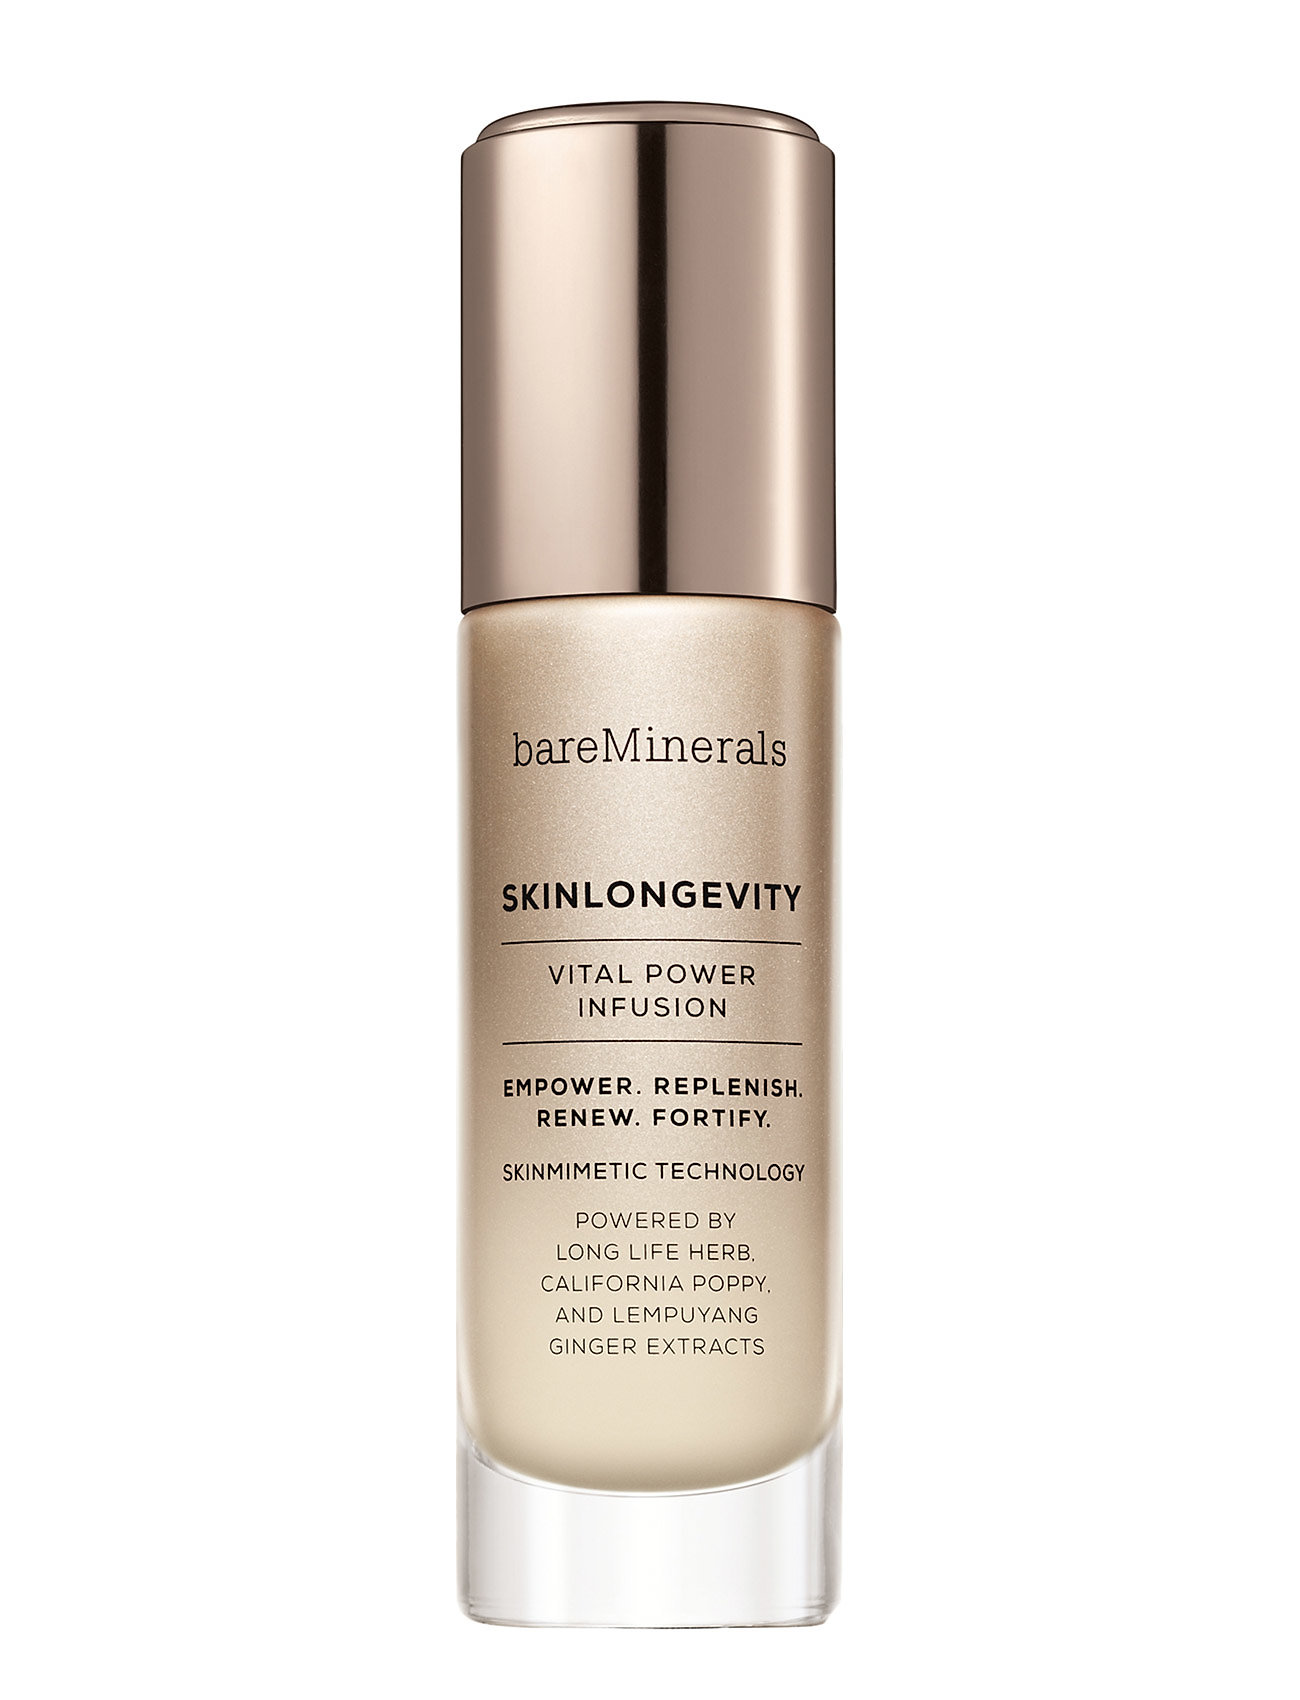 Image of Skinlongevity Vital Power Infusion Beauty WOMEN Skin Care Face Day Creams Nude BareMinerals (3409964037)